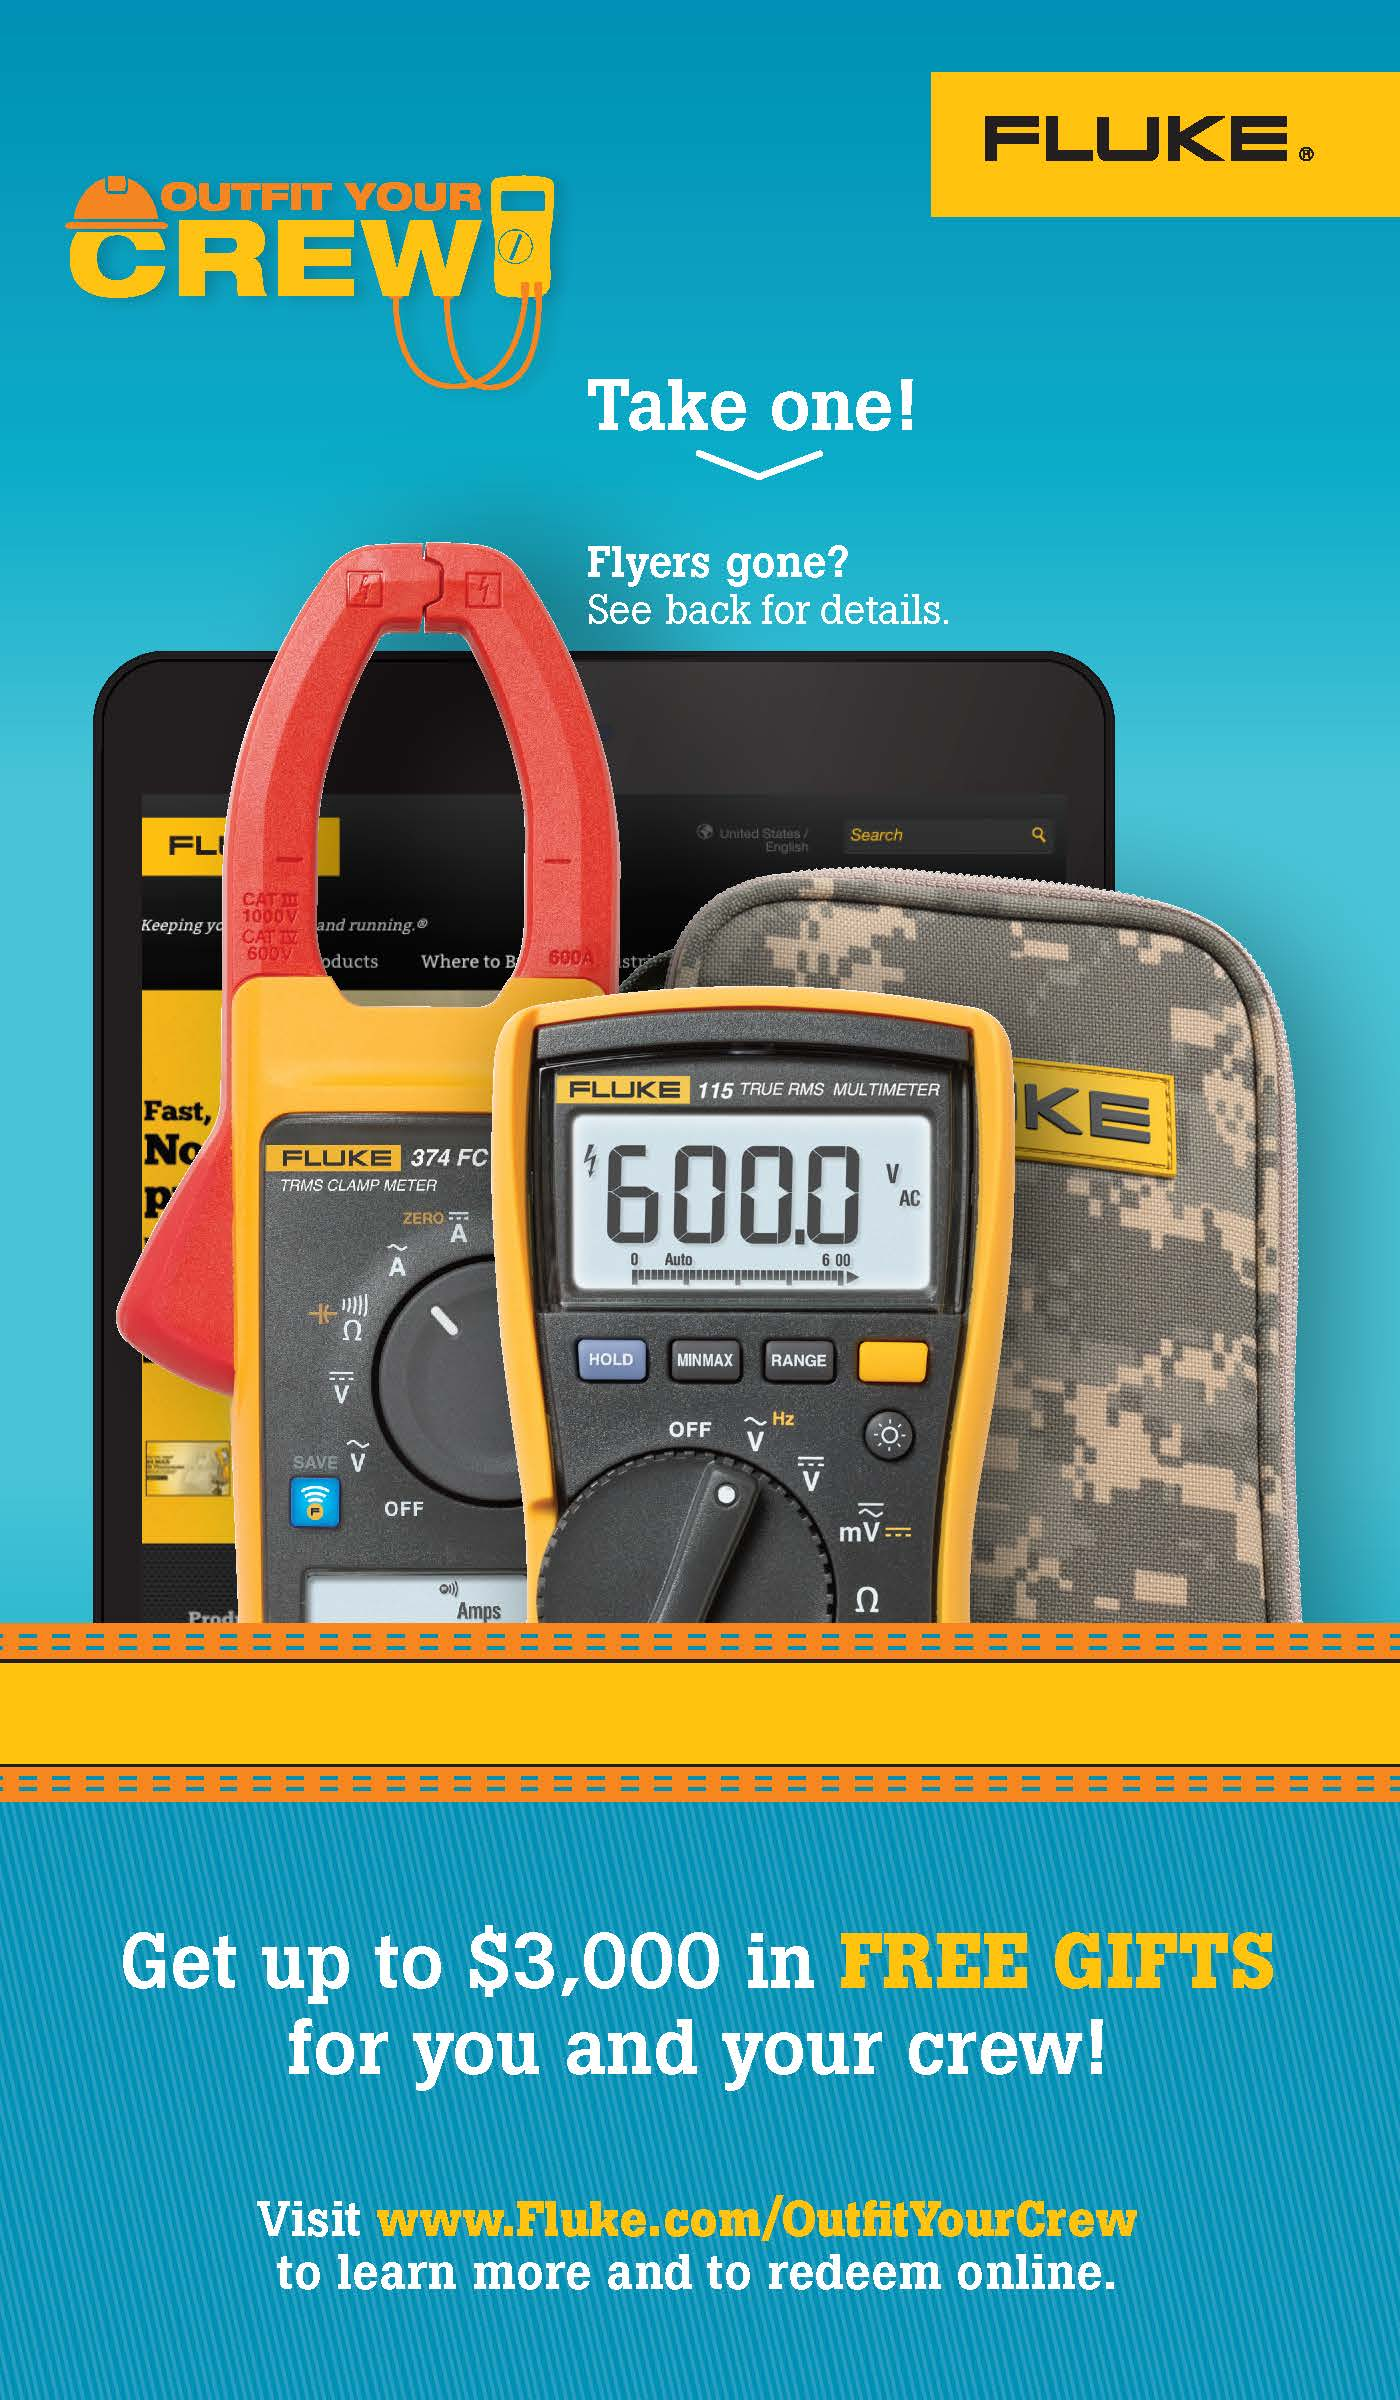 Fluke T3 National Promo, Outfit Your Crew, Counter Caddy